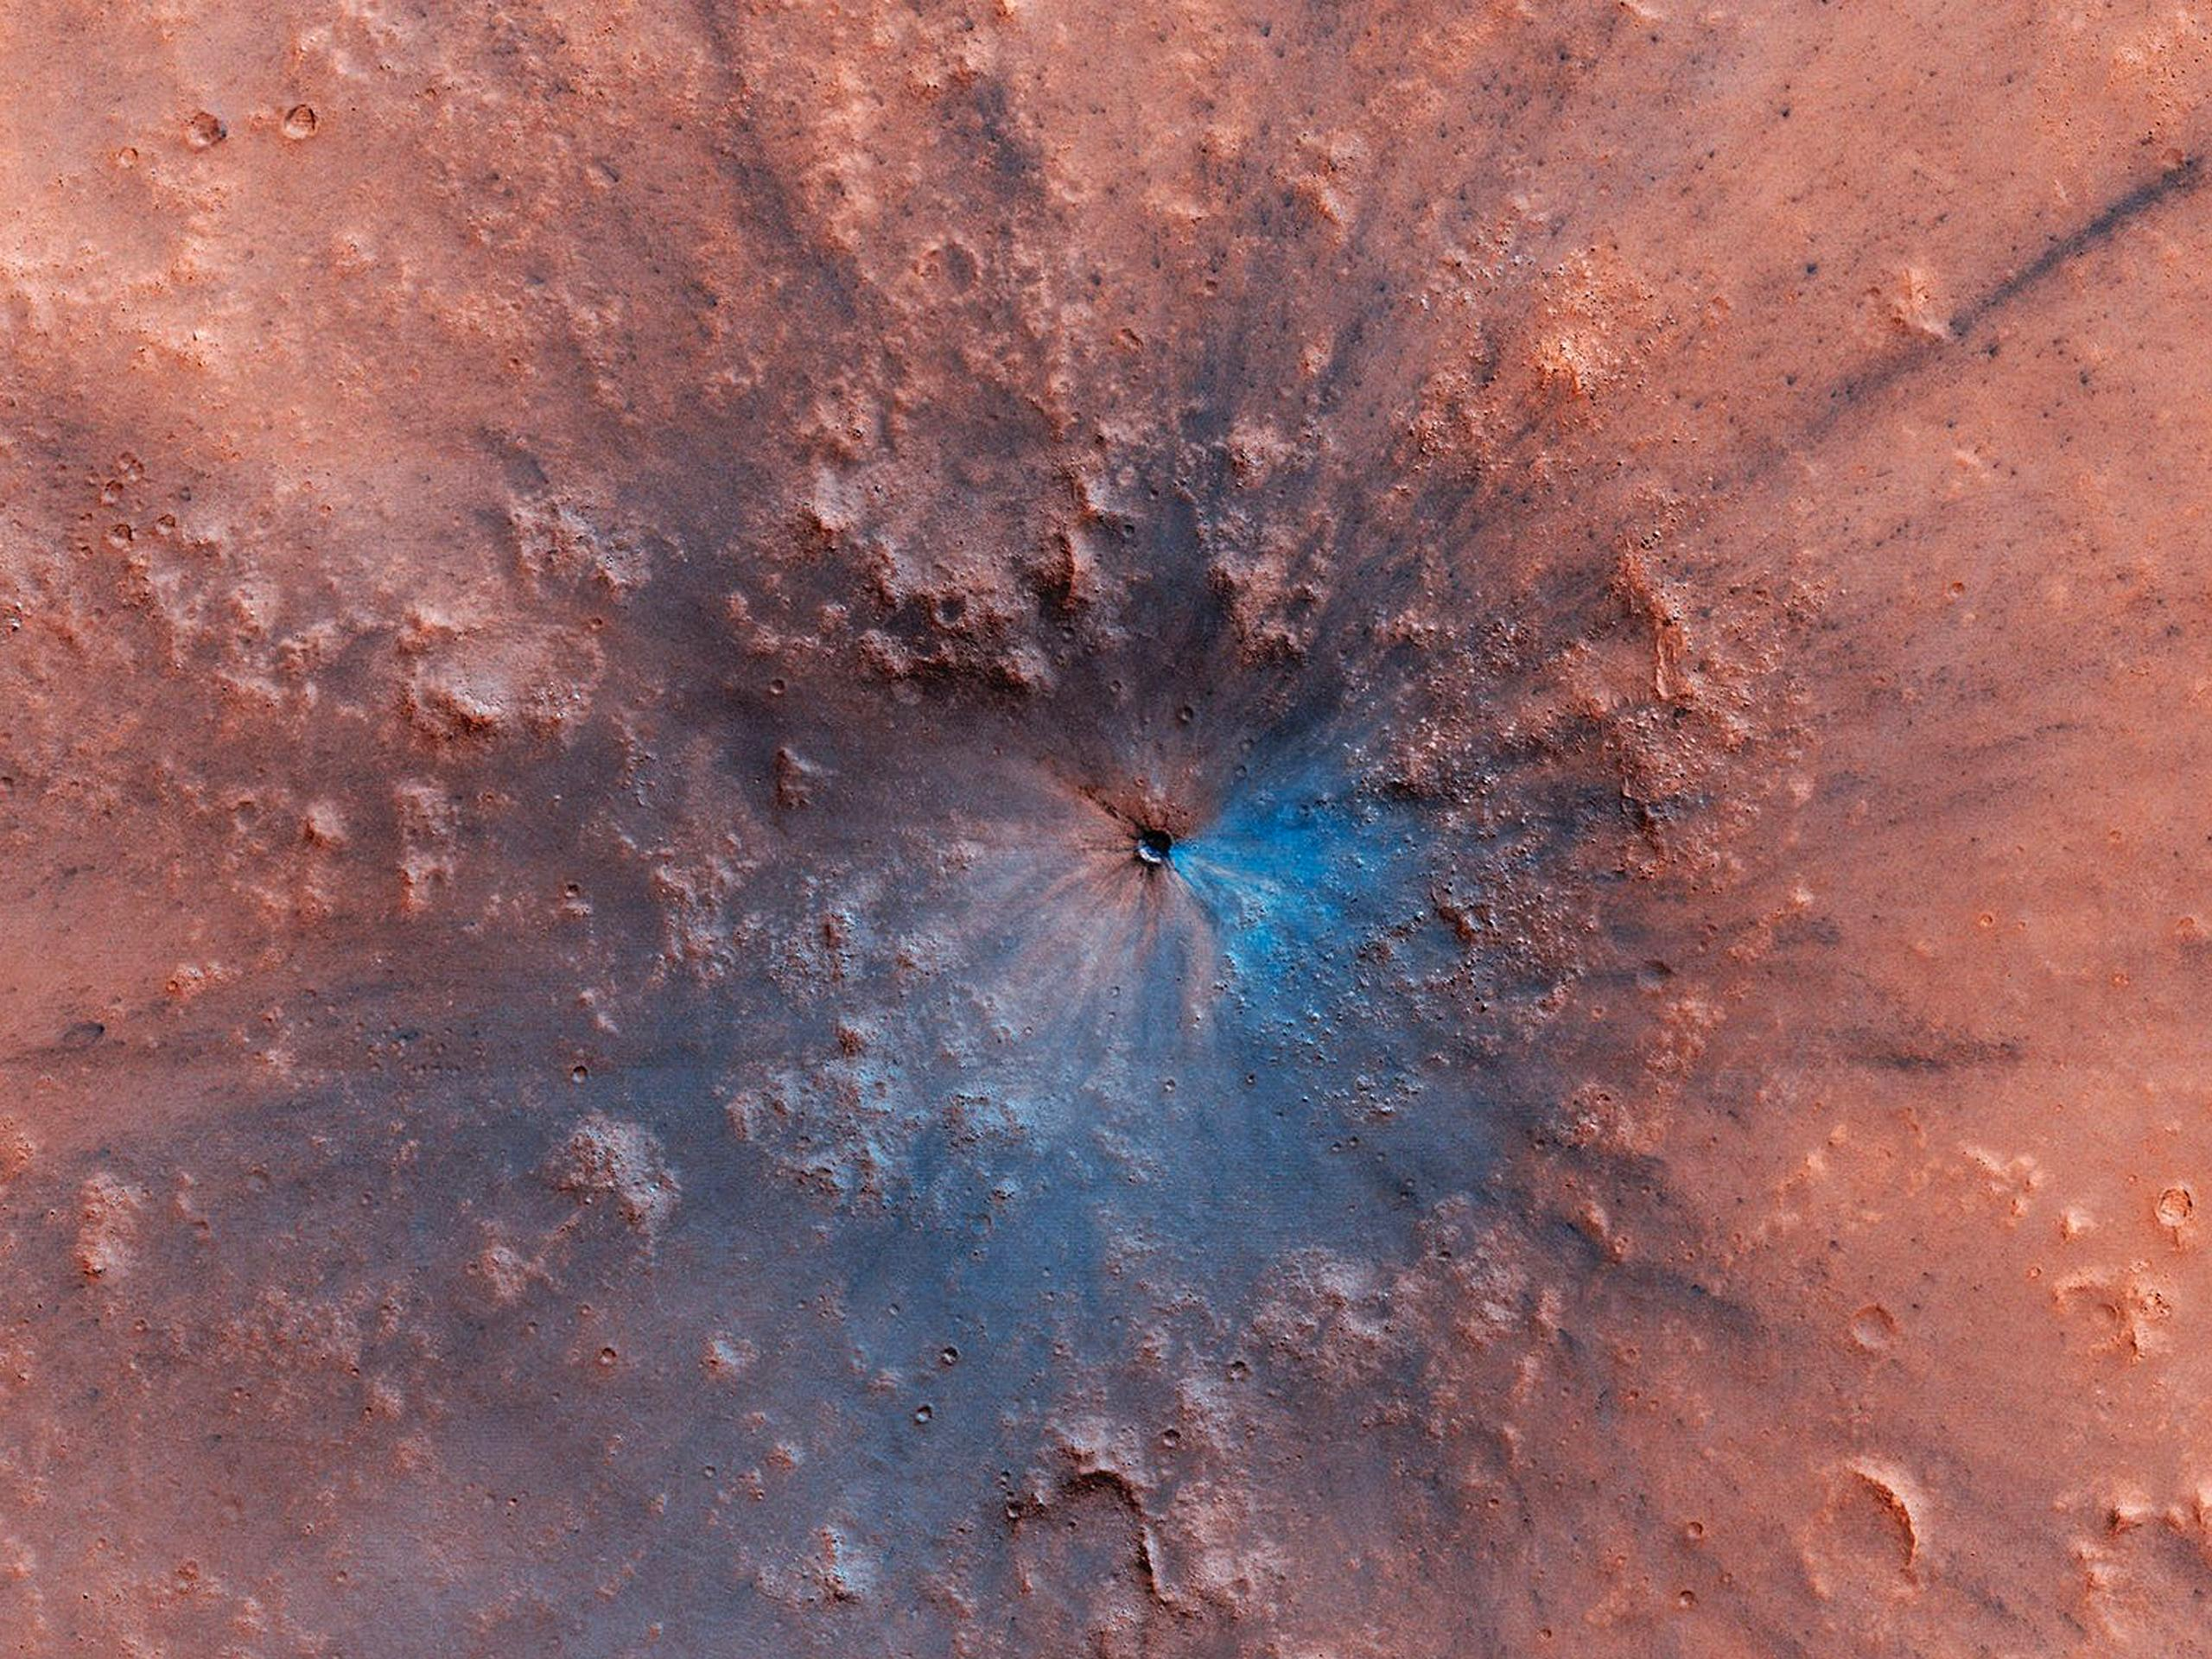 Mars has a brand new crater, and it sure is pretty